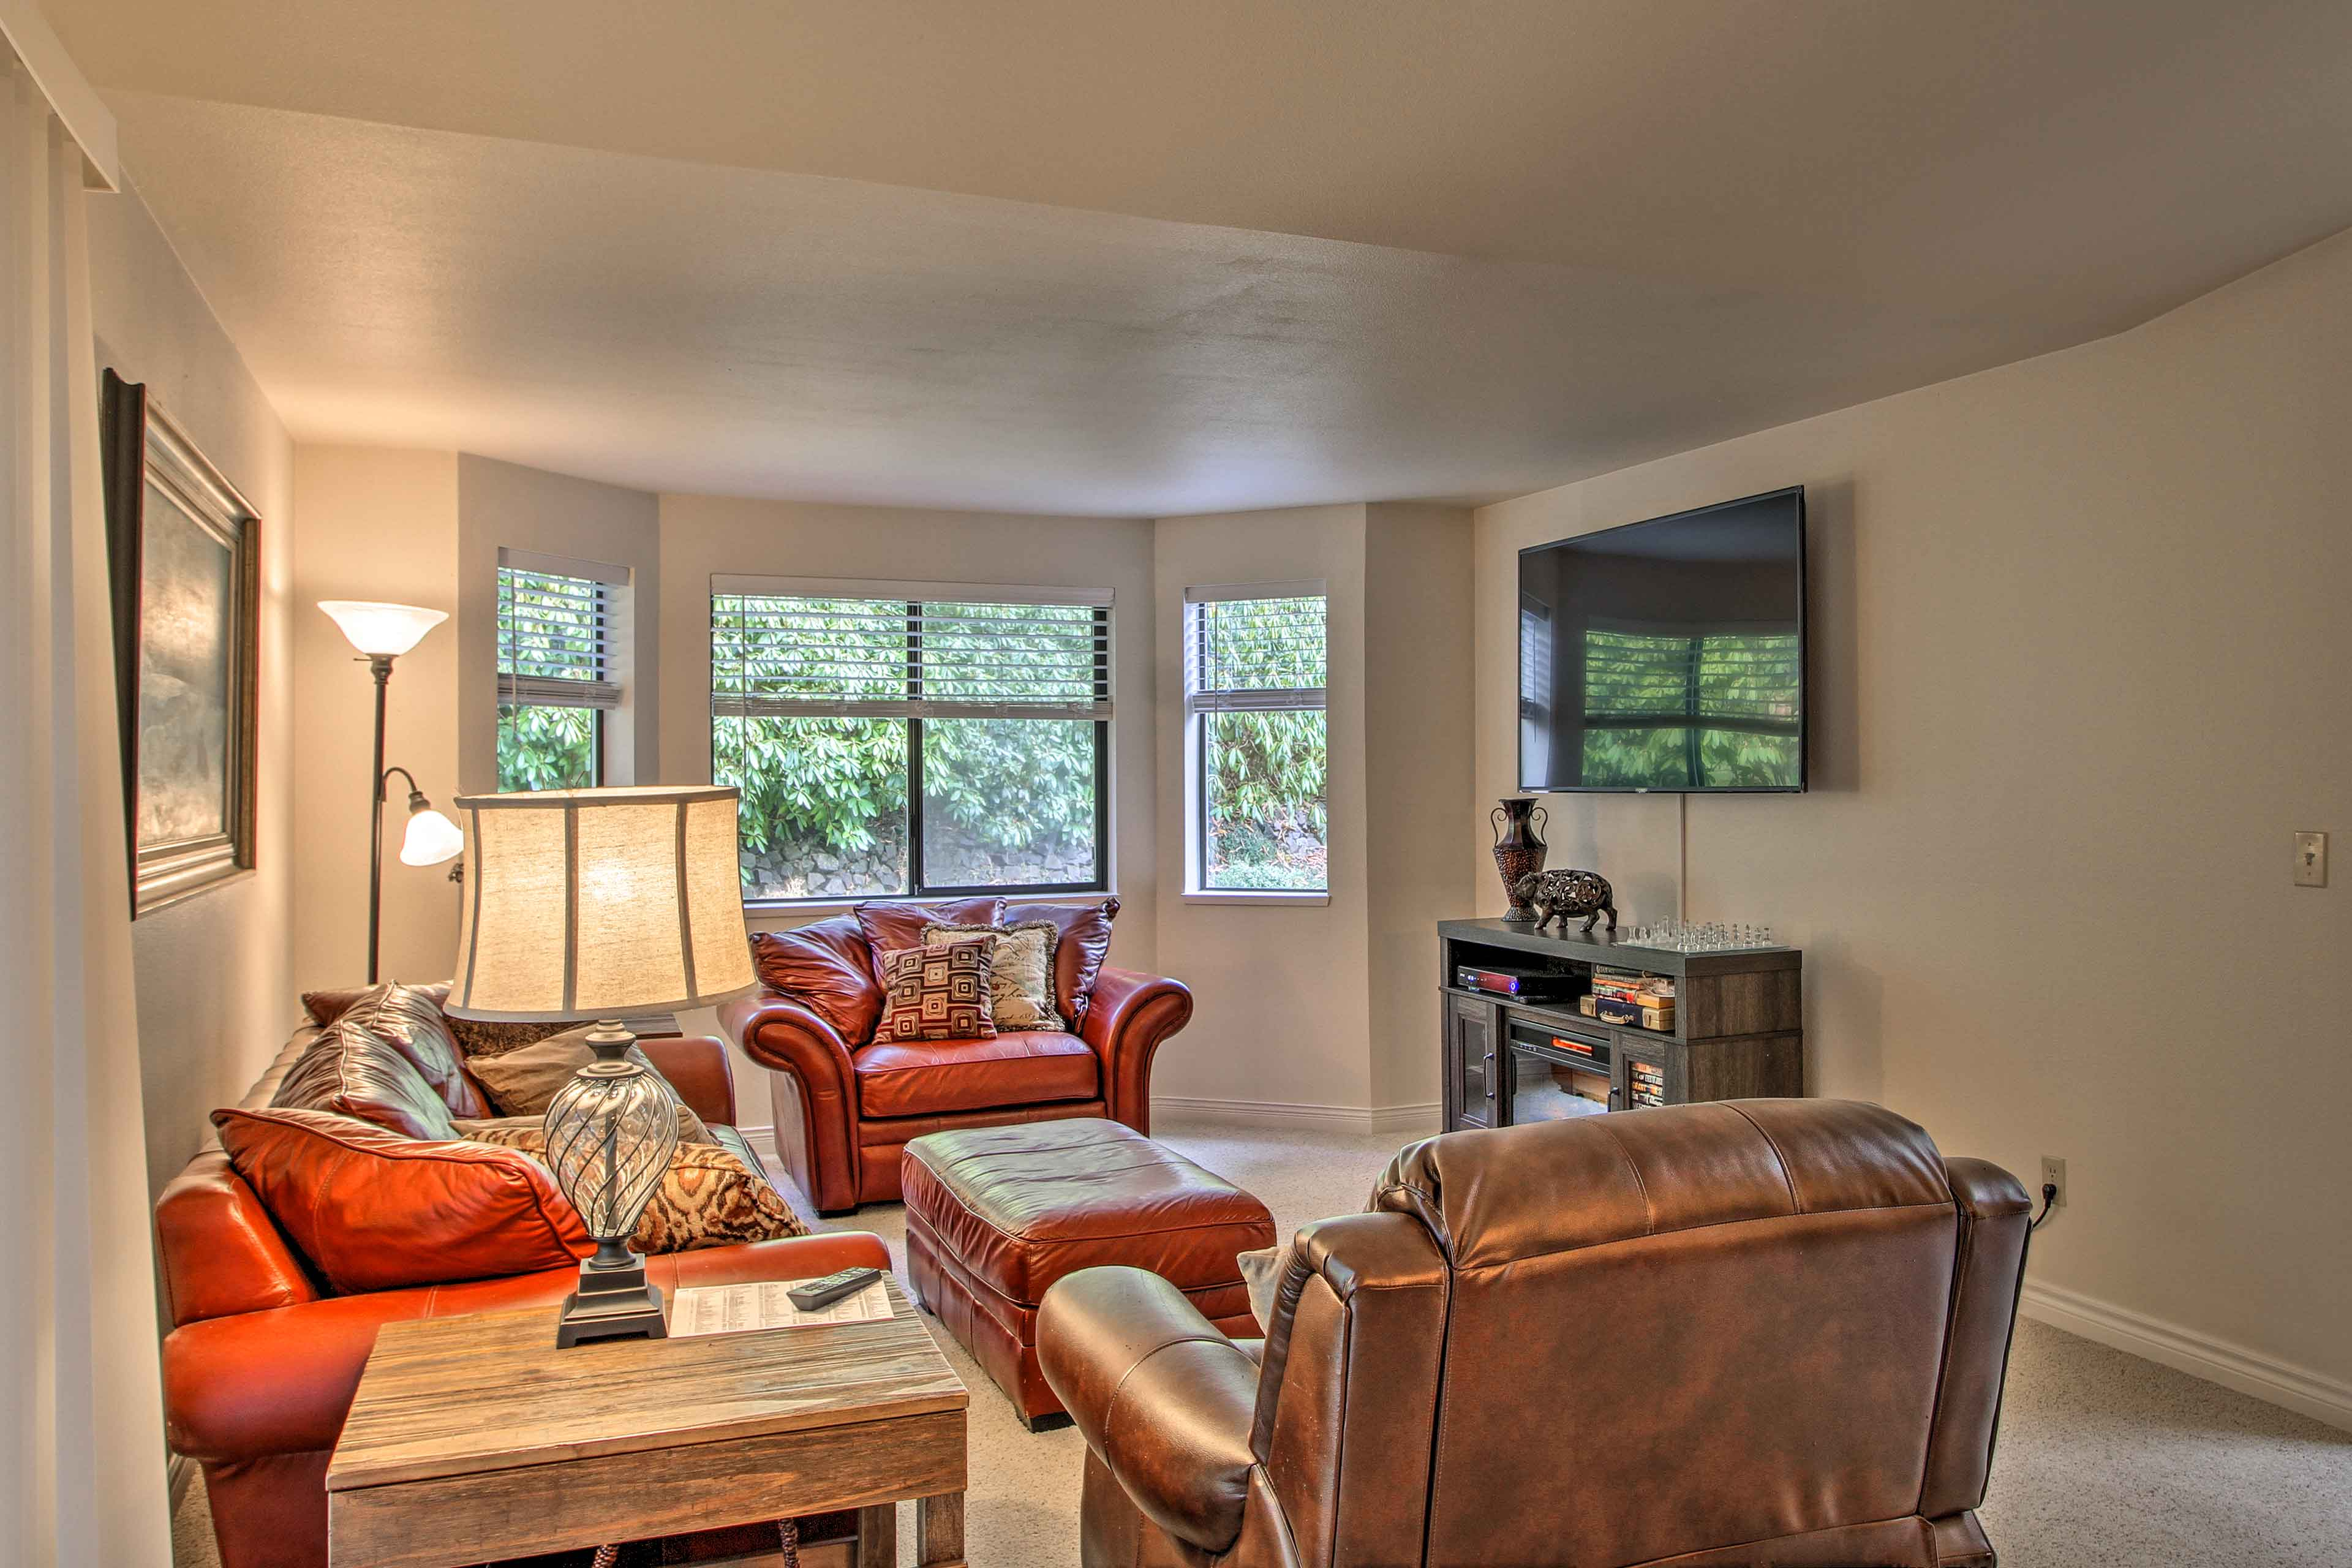 This cozy home features 3 bedrooms, 2 baths, and room for 6.